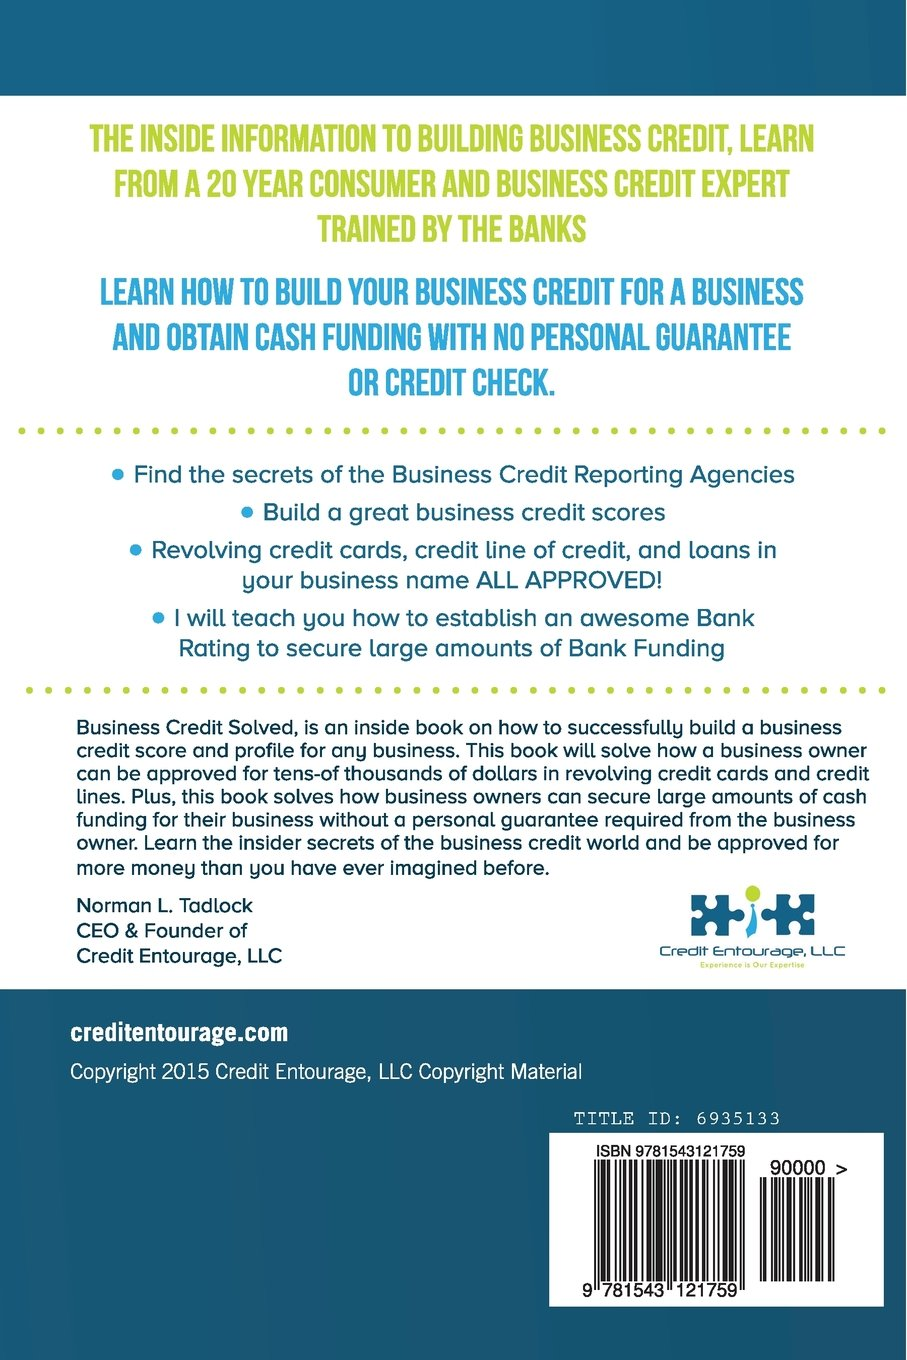 Amazon business credit solved build business credit quickly amazon business credit solved build business credit quickly 9781543121759 norman l tadlock books colourmoves